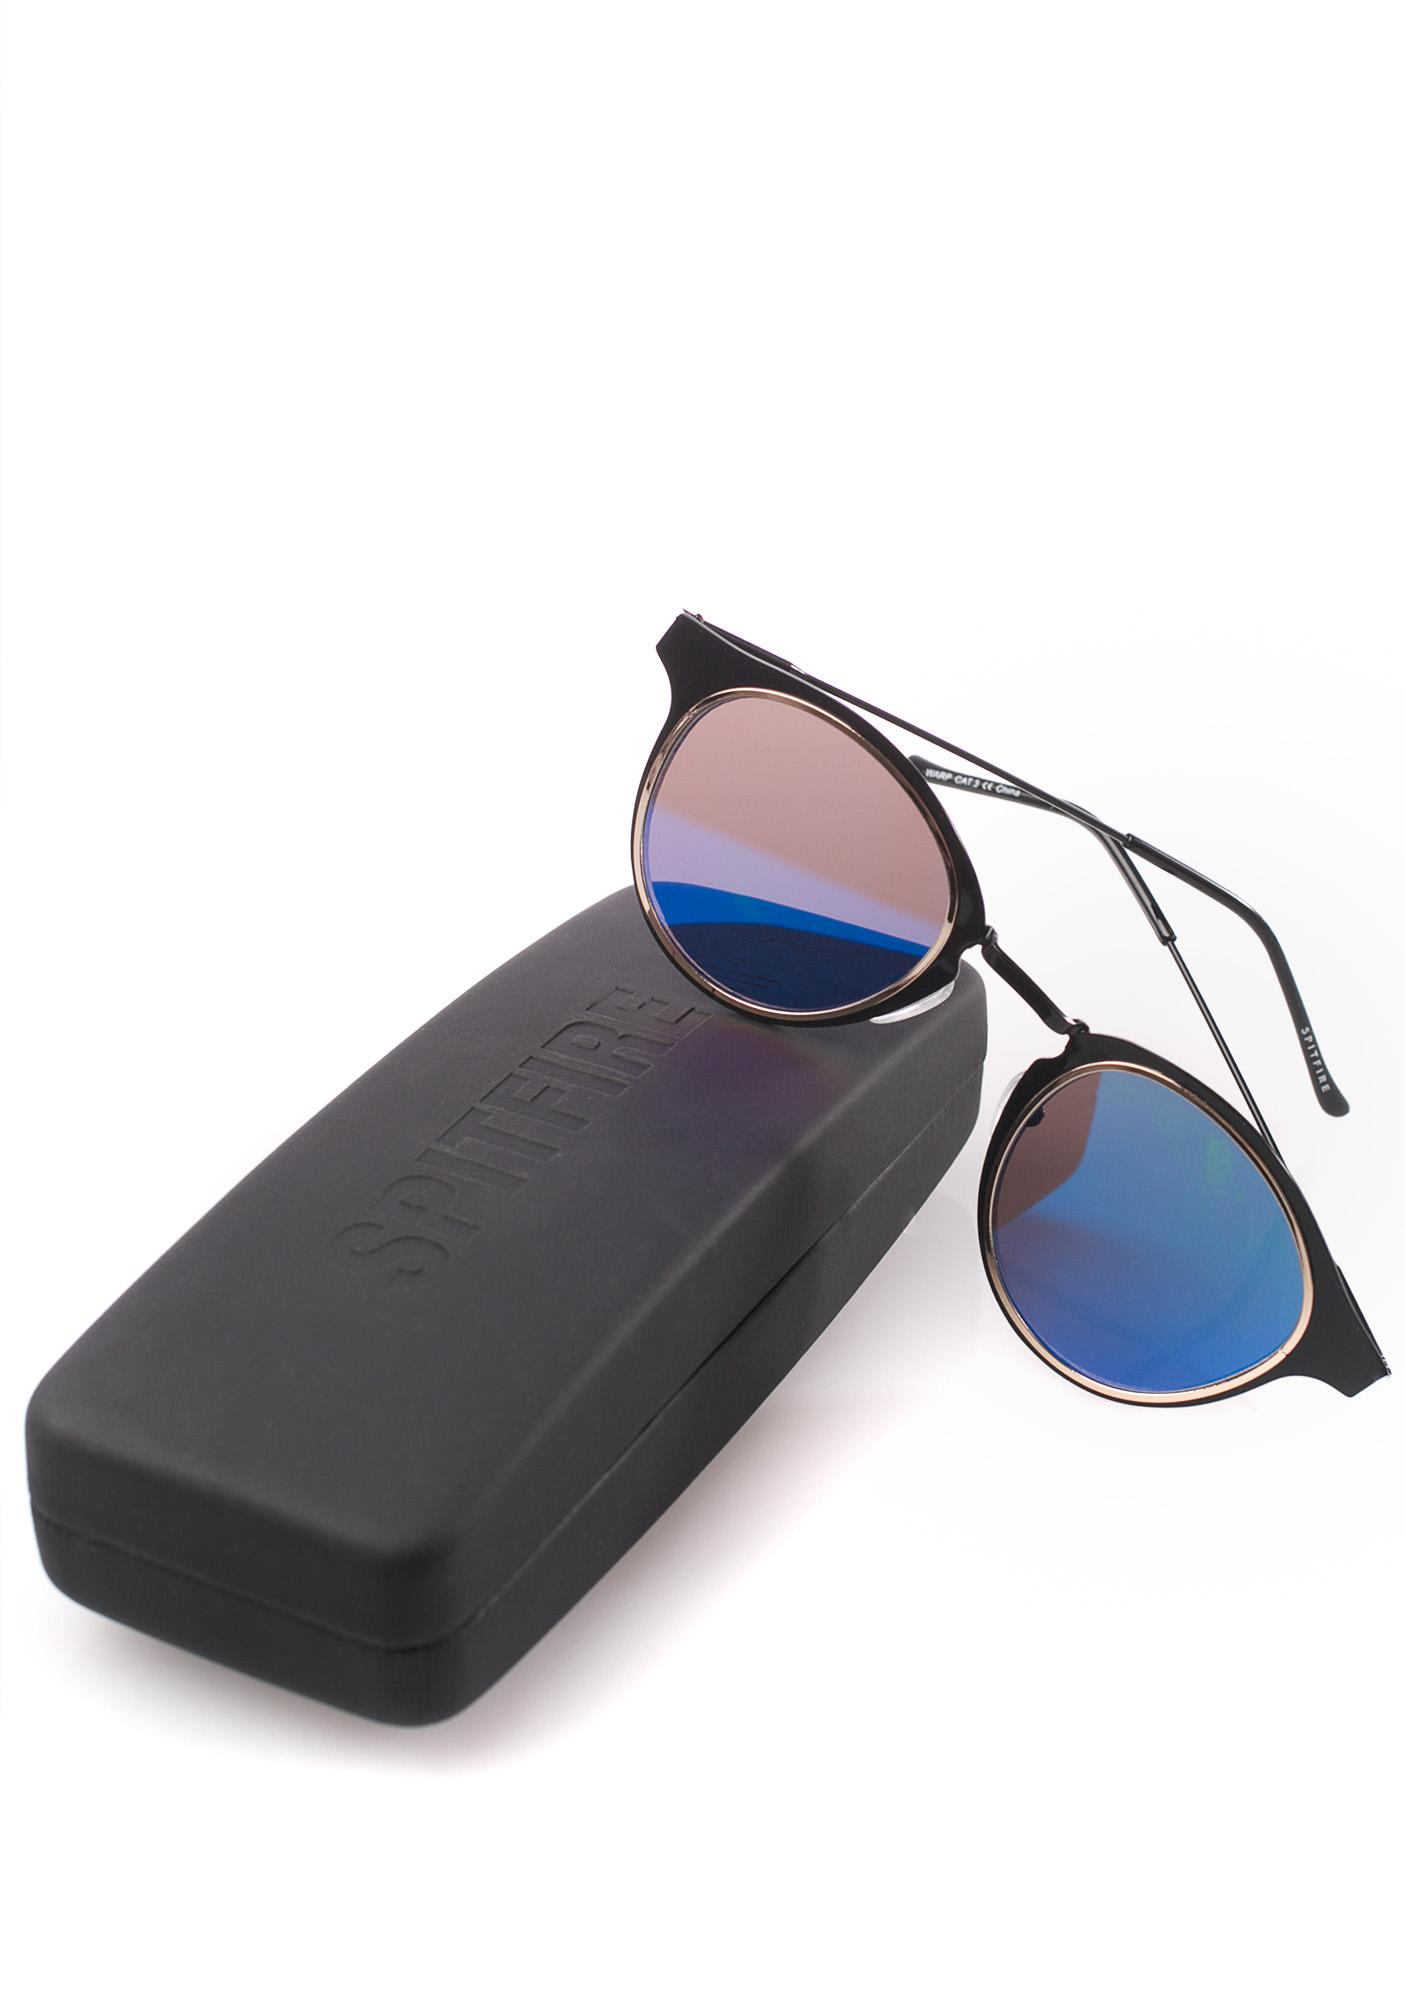 fee8968356 ... Spitfire Warp Sunglasses · Spitfire Warp Sunglasses